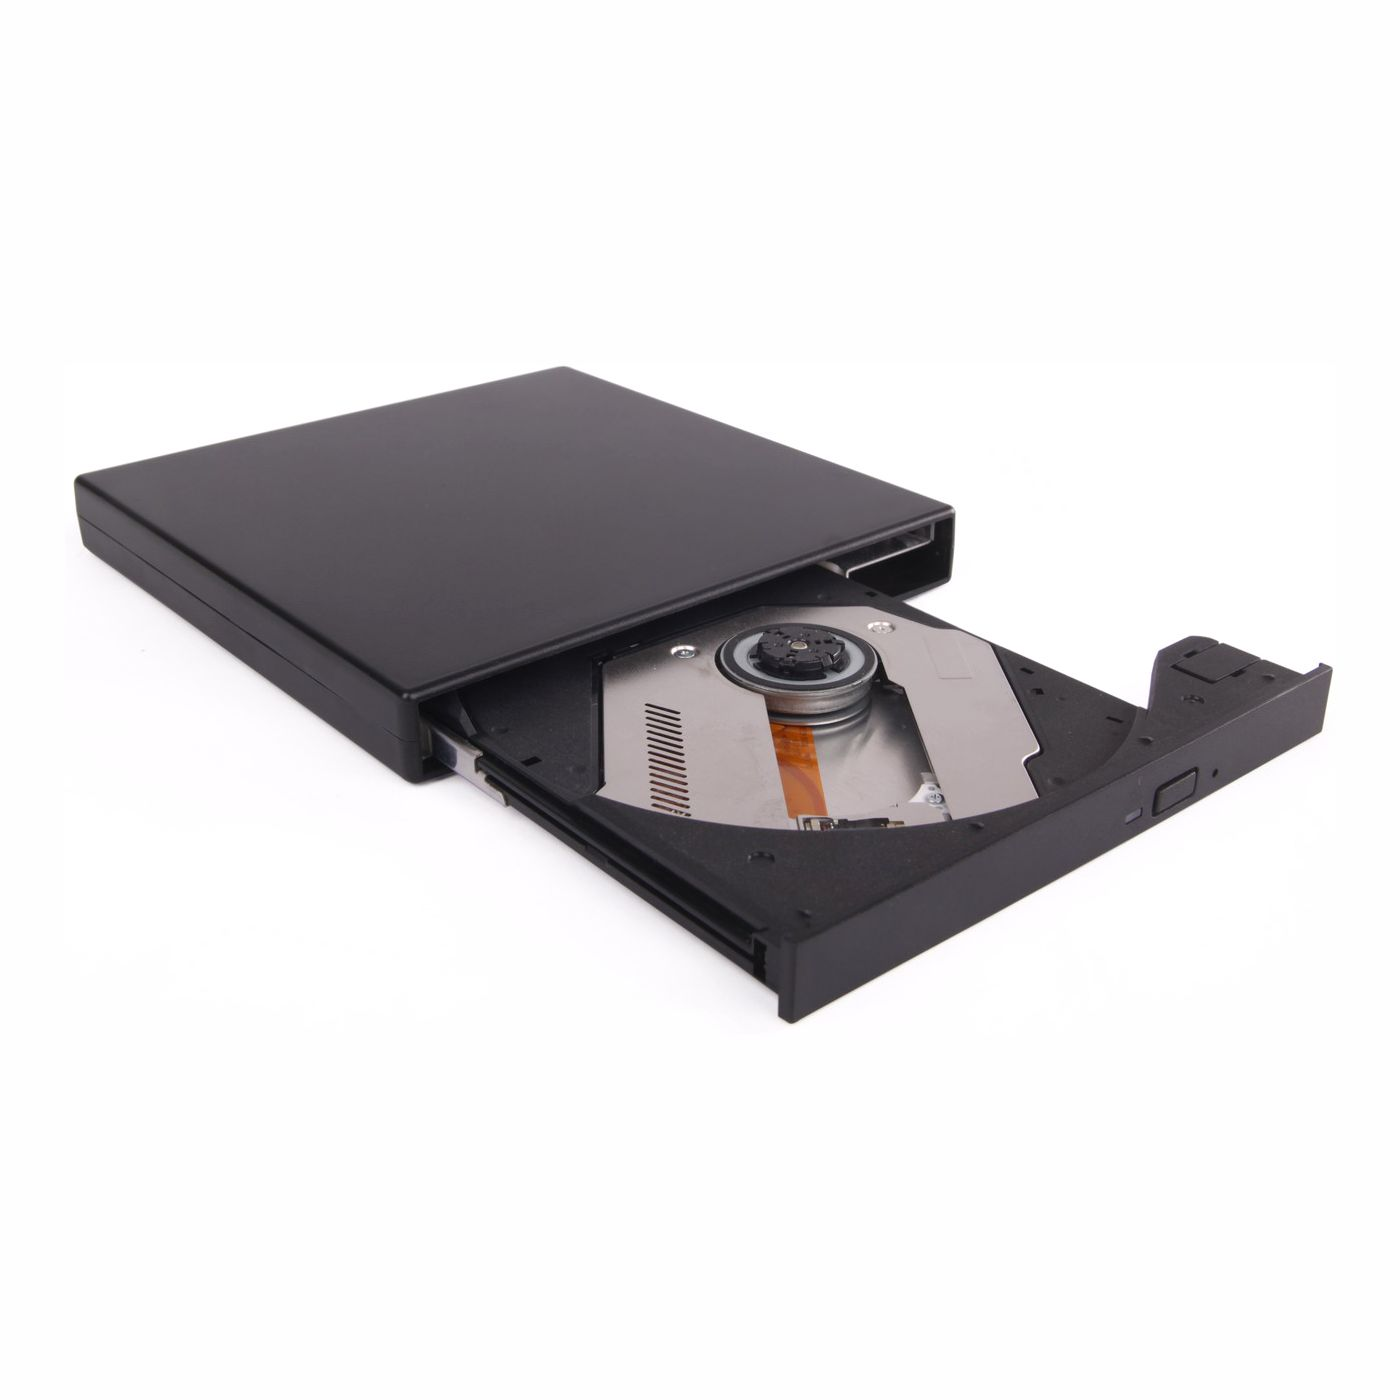 externes usb 2 0 cd dvd brenner writer dvd rw cd rw cd rom. Black Bedroom Furniture Sets. Home Design Ideas